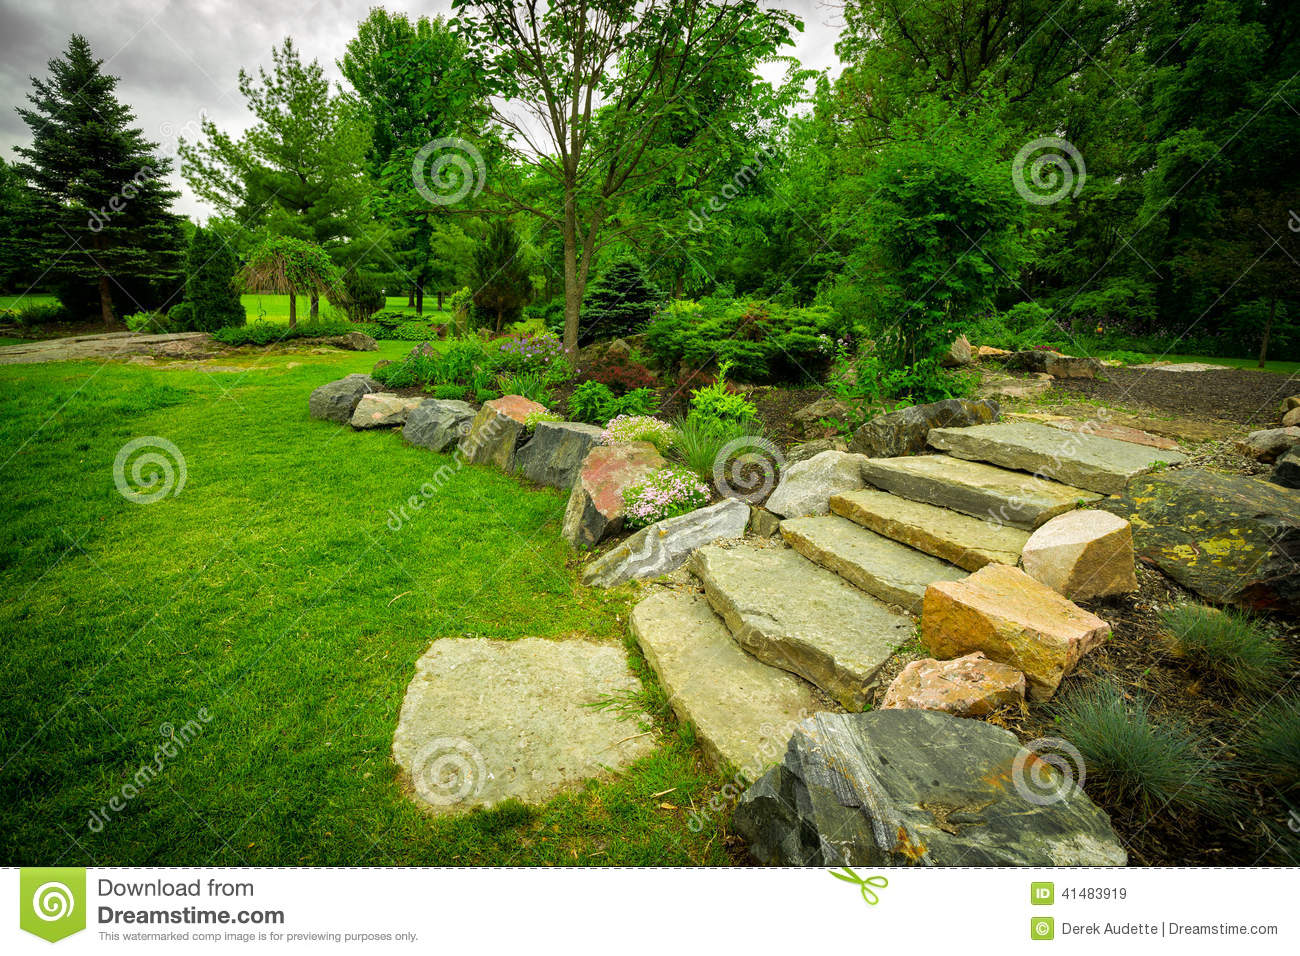 Royalty free stock photo download stone stairway